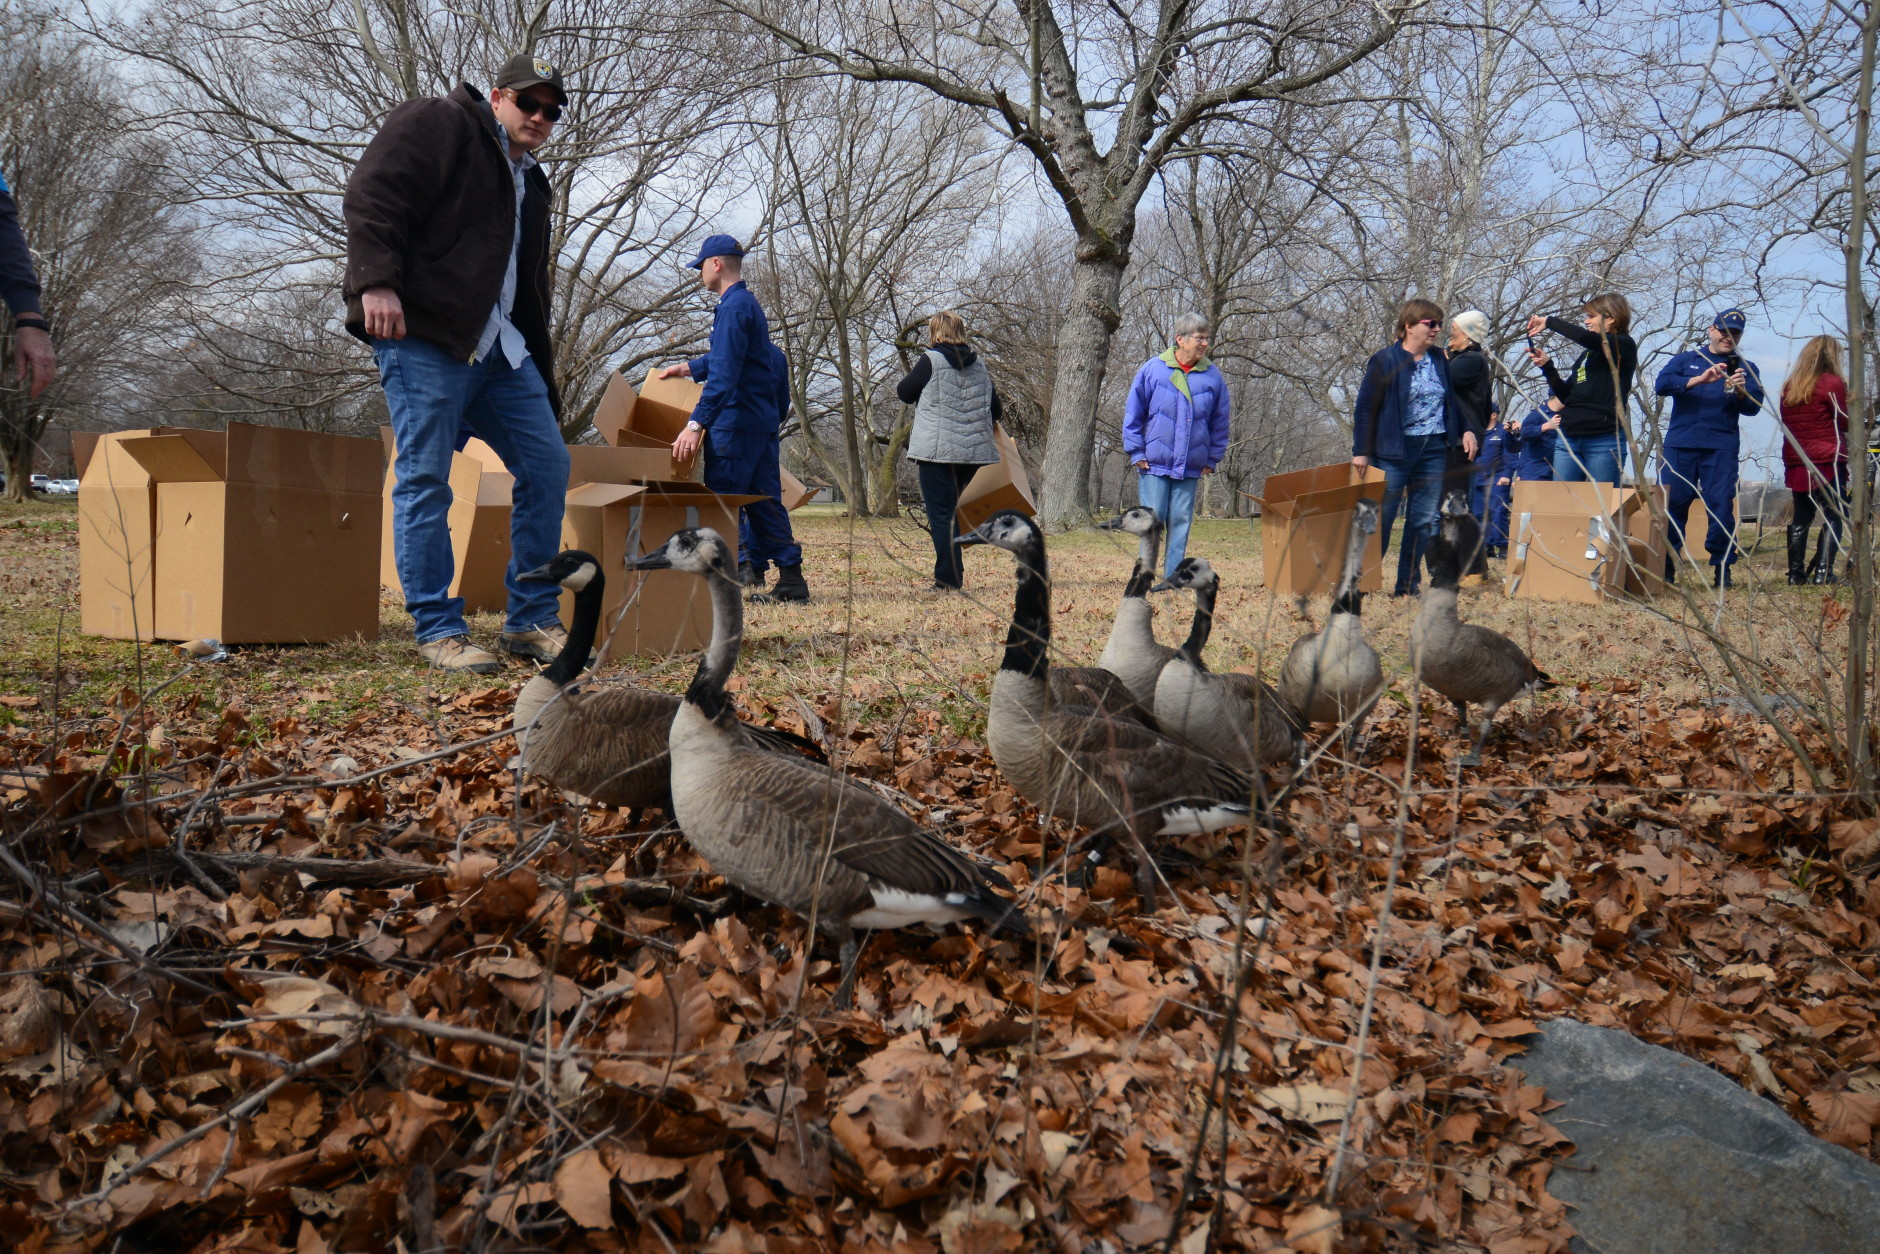 Feathers thrashed as the geese were released in Belle Haven, Virginia Monday. (WTOP/Kristi King)